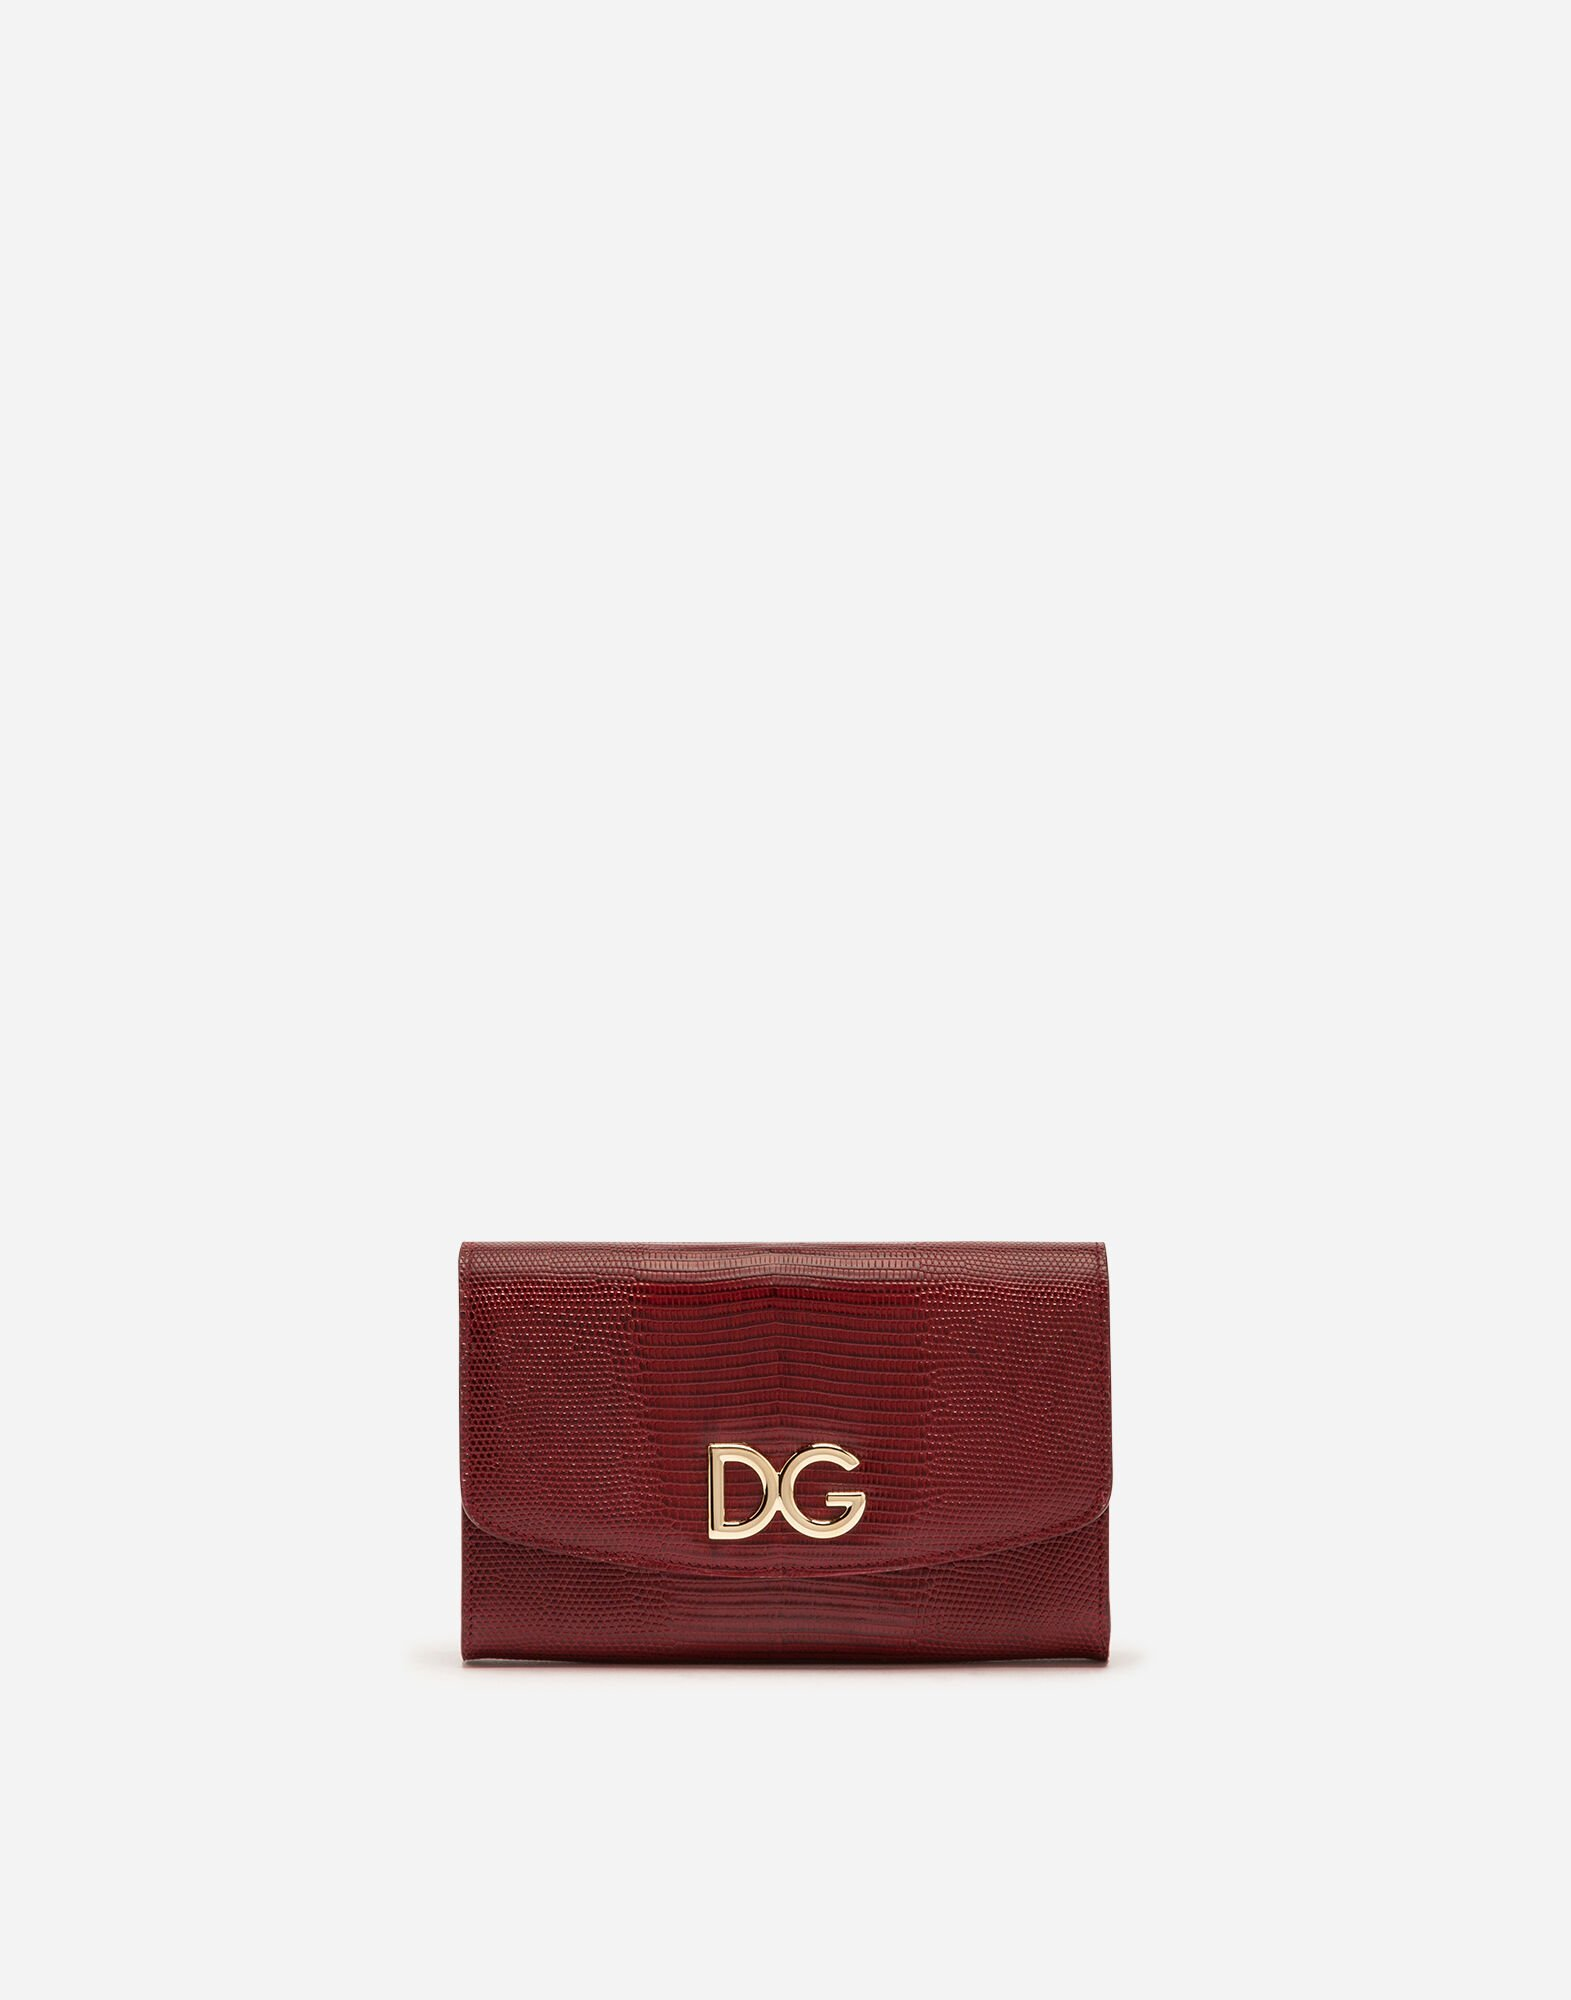 Dolce & Gabbana Small Leather Goods - IGUANA PRINT CALFSKIN WALLET BAG